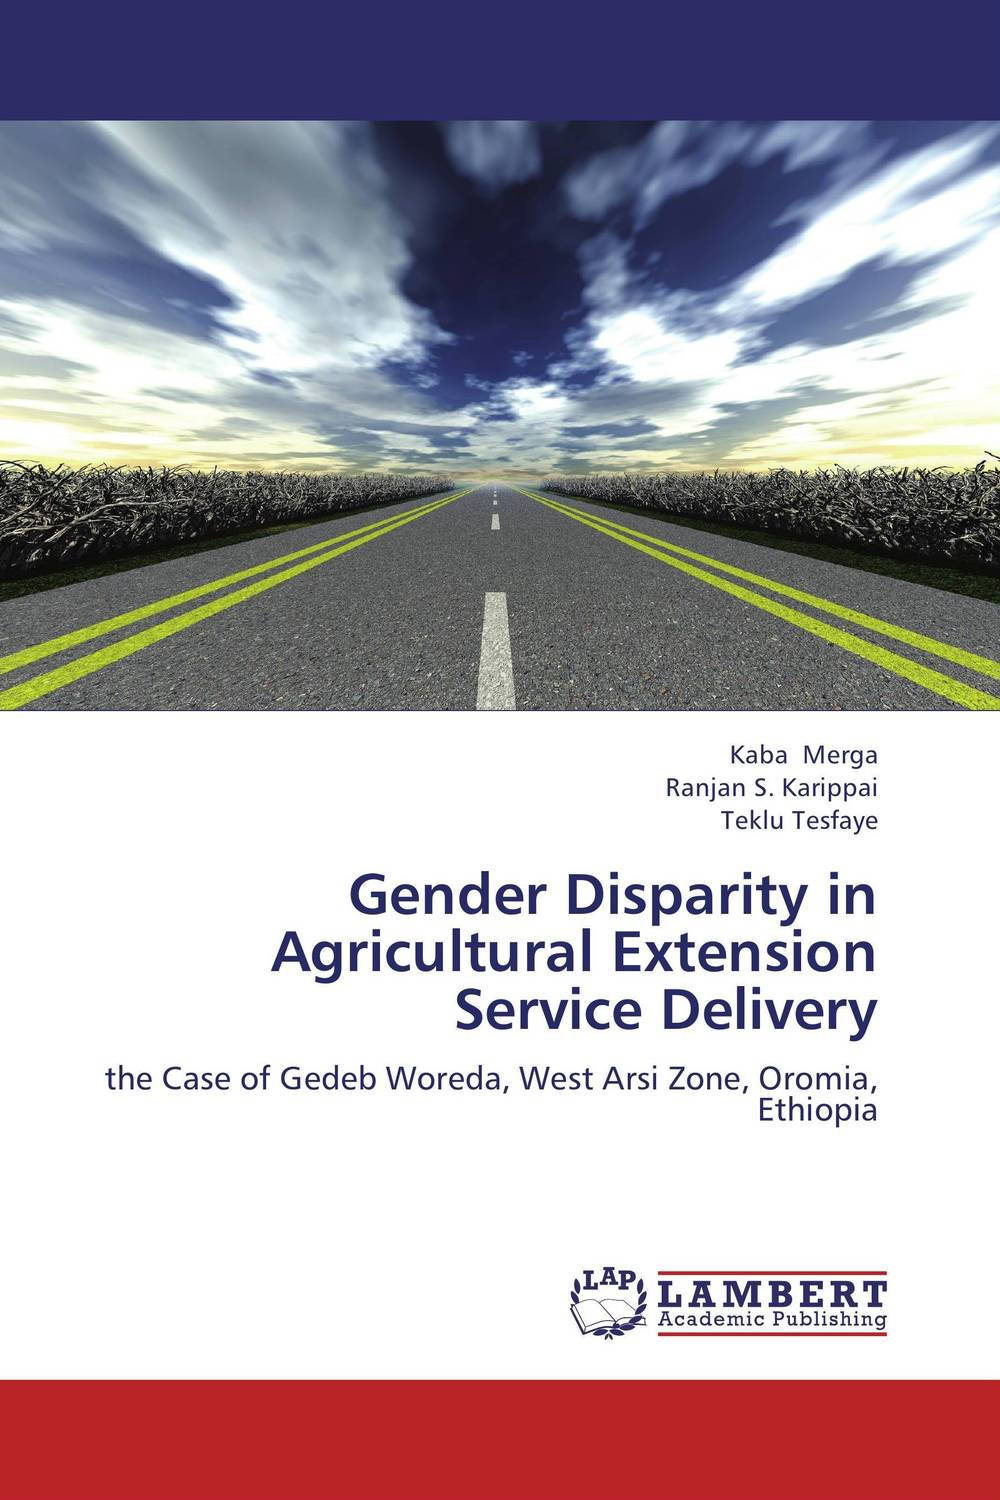 Gender Disparity in Agricultural Extension Service Delivery